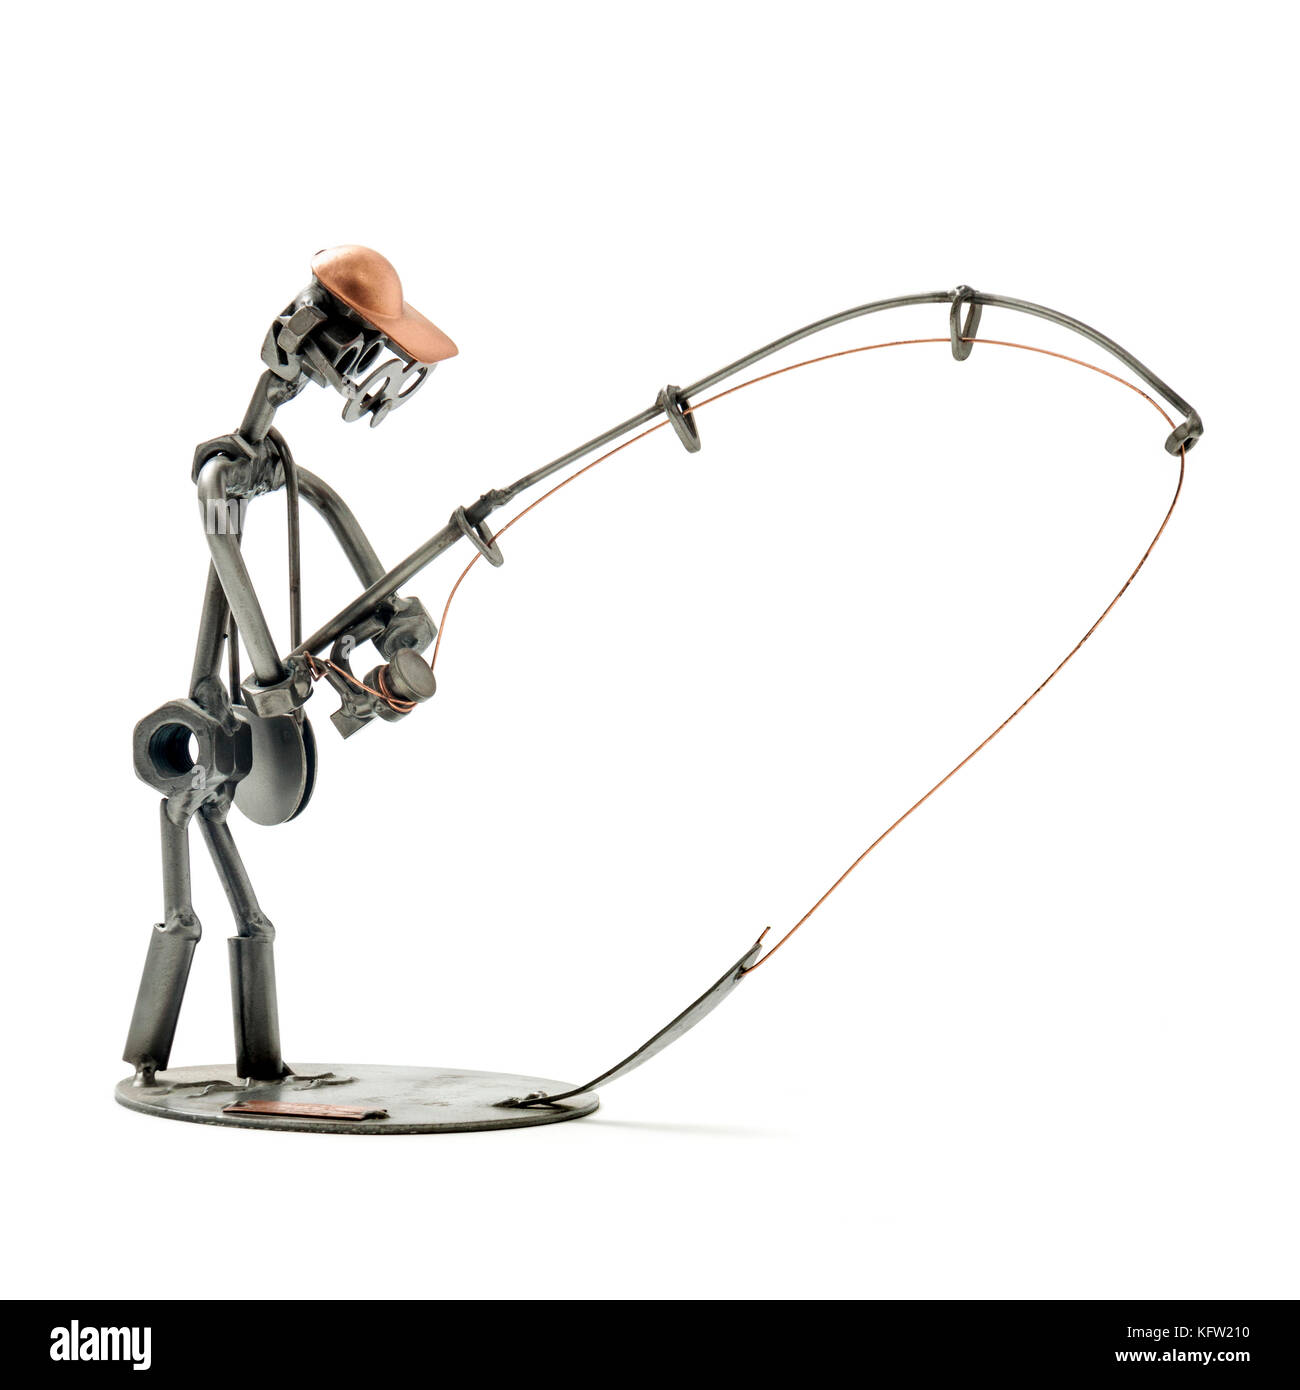 Metal sculpture of an angler by Hinz & Kunst, Munich, Germany - Stock Image